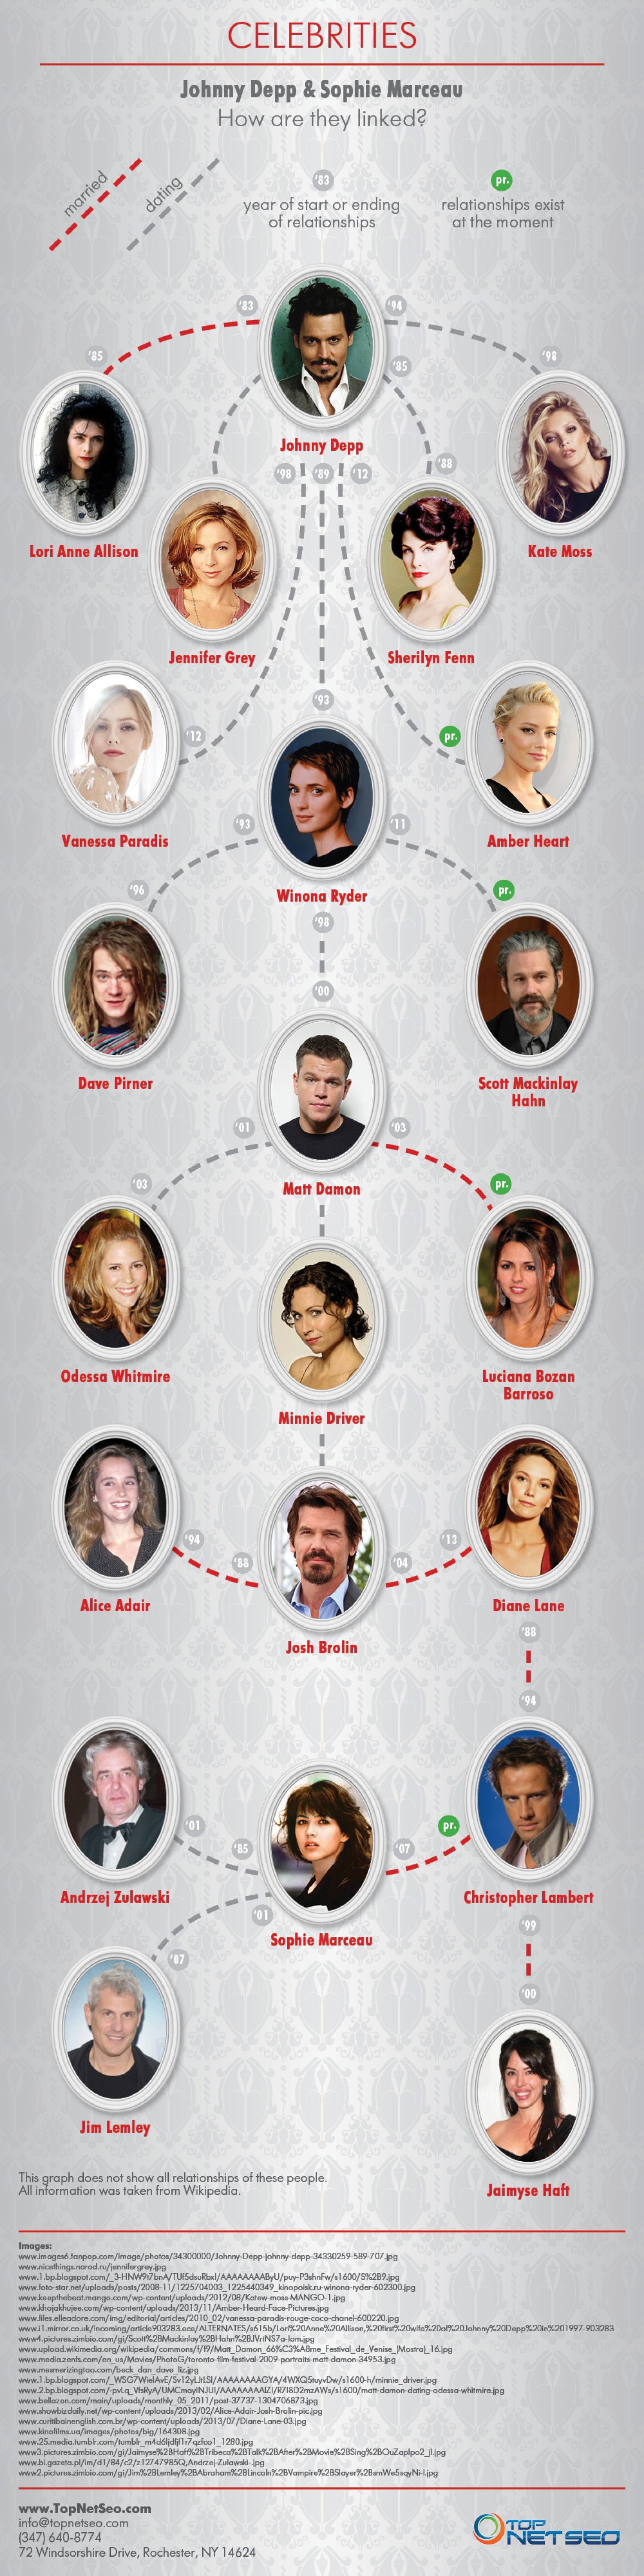 Johnny Depp & Sophie Marceau. How are they linked? Infographic